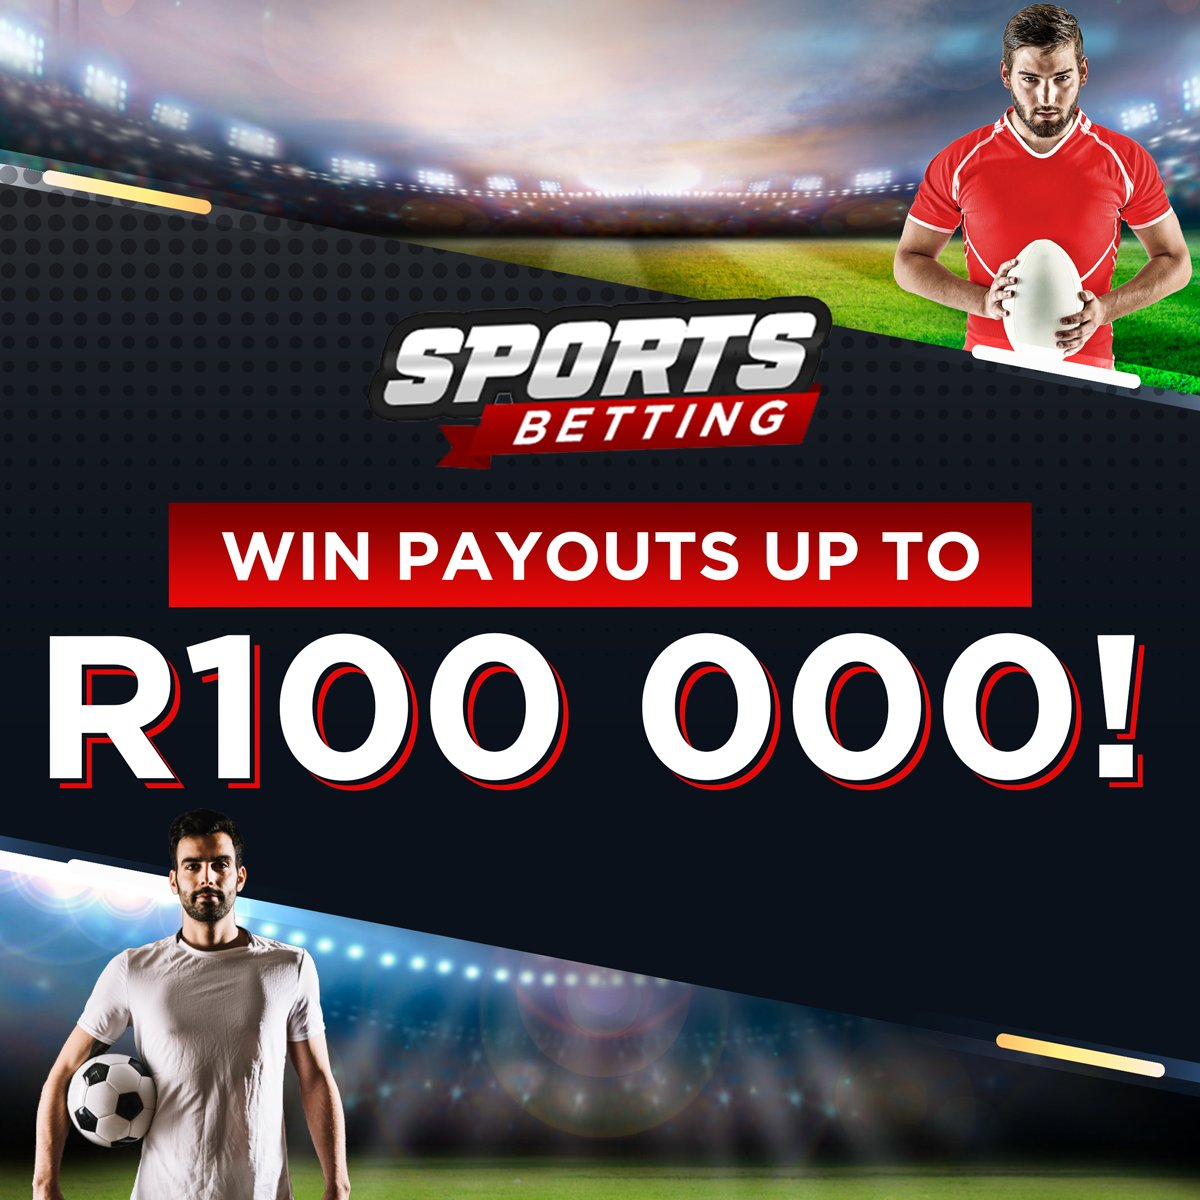 You wouldn't want to #miss your favourite #team in #action! So, why would you want to miss these #GREAT payouts – R100000? It's #SportsBetting time and we have action-packed #international and local sports events to choose from. #Bet now!